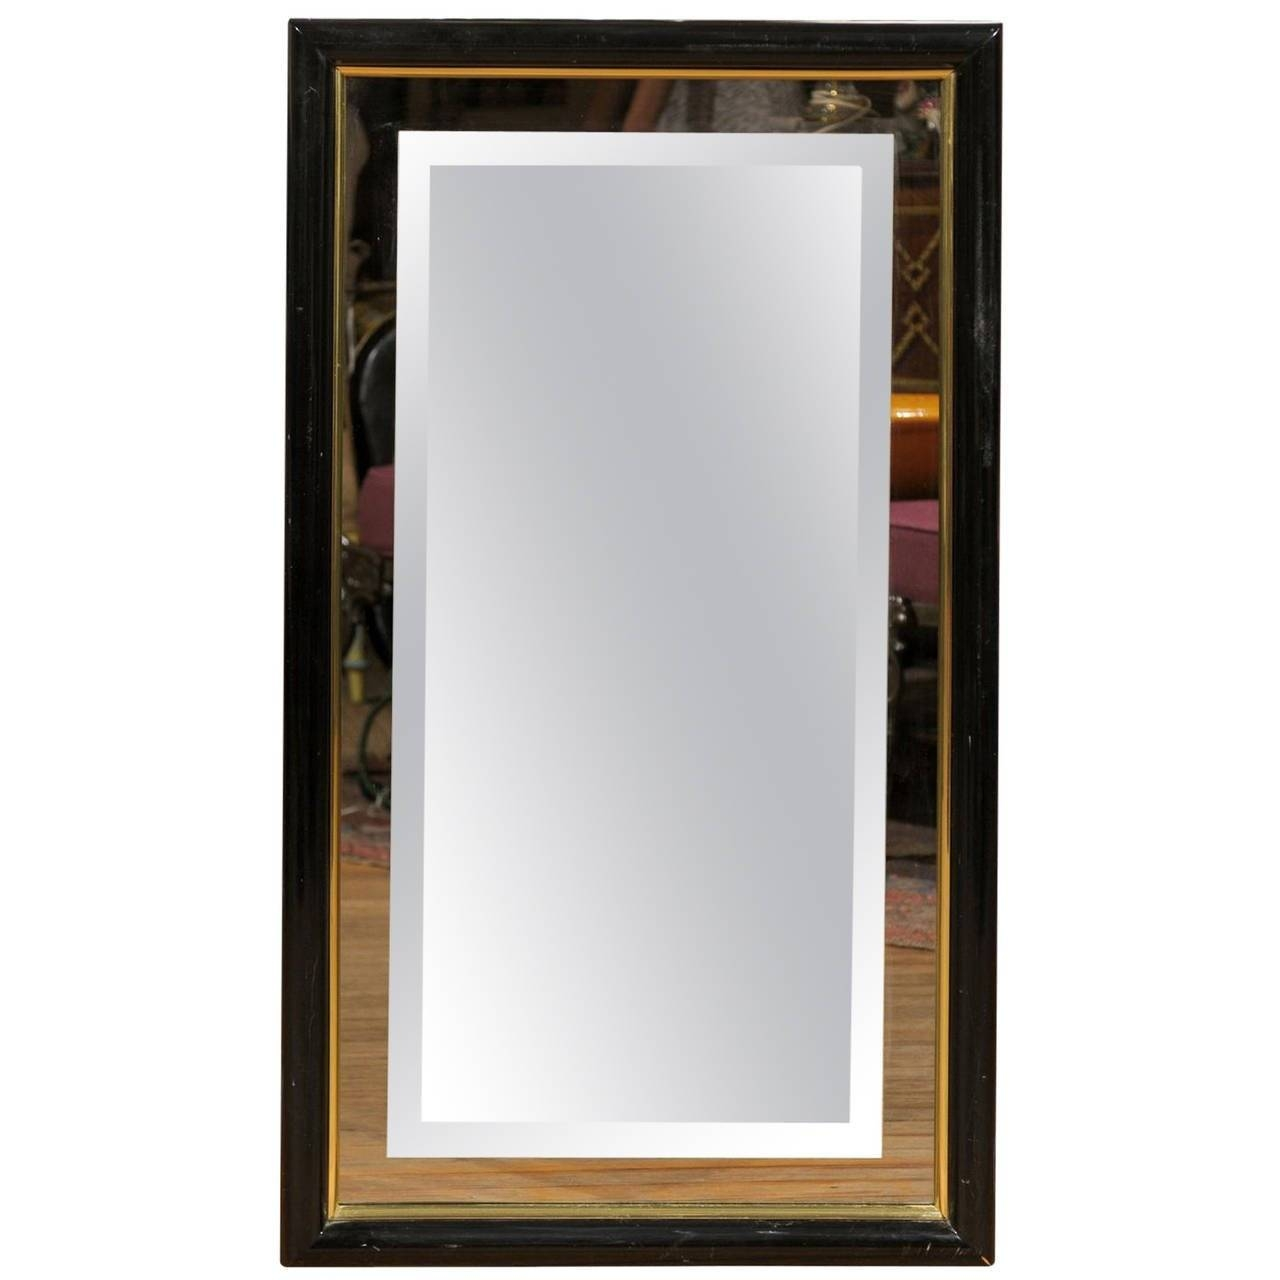 Smoked And Beveled Glass Wall Mirror In A Black And Brass Frame Inside Black Bevelled Mirrors (Photo 12 of 13)